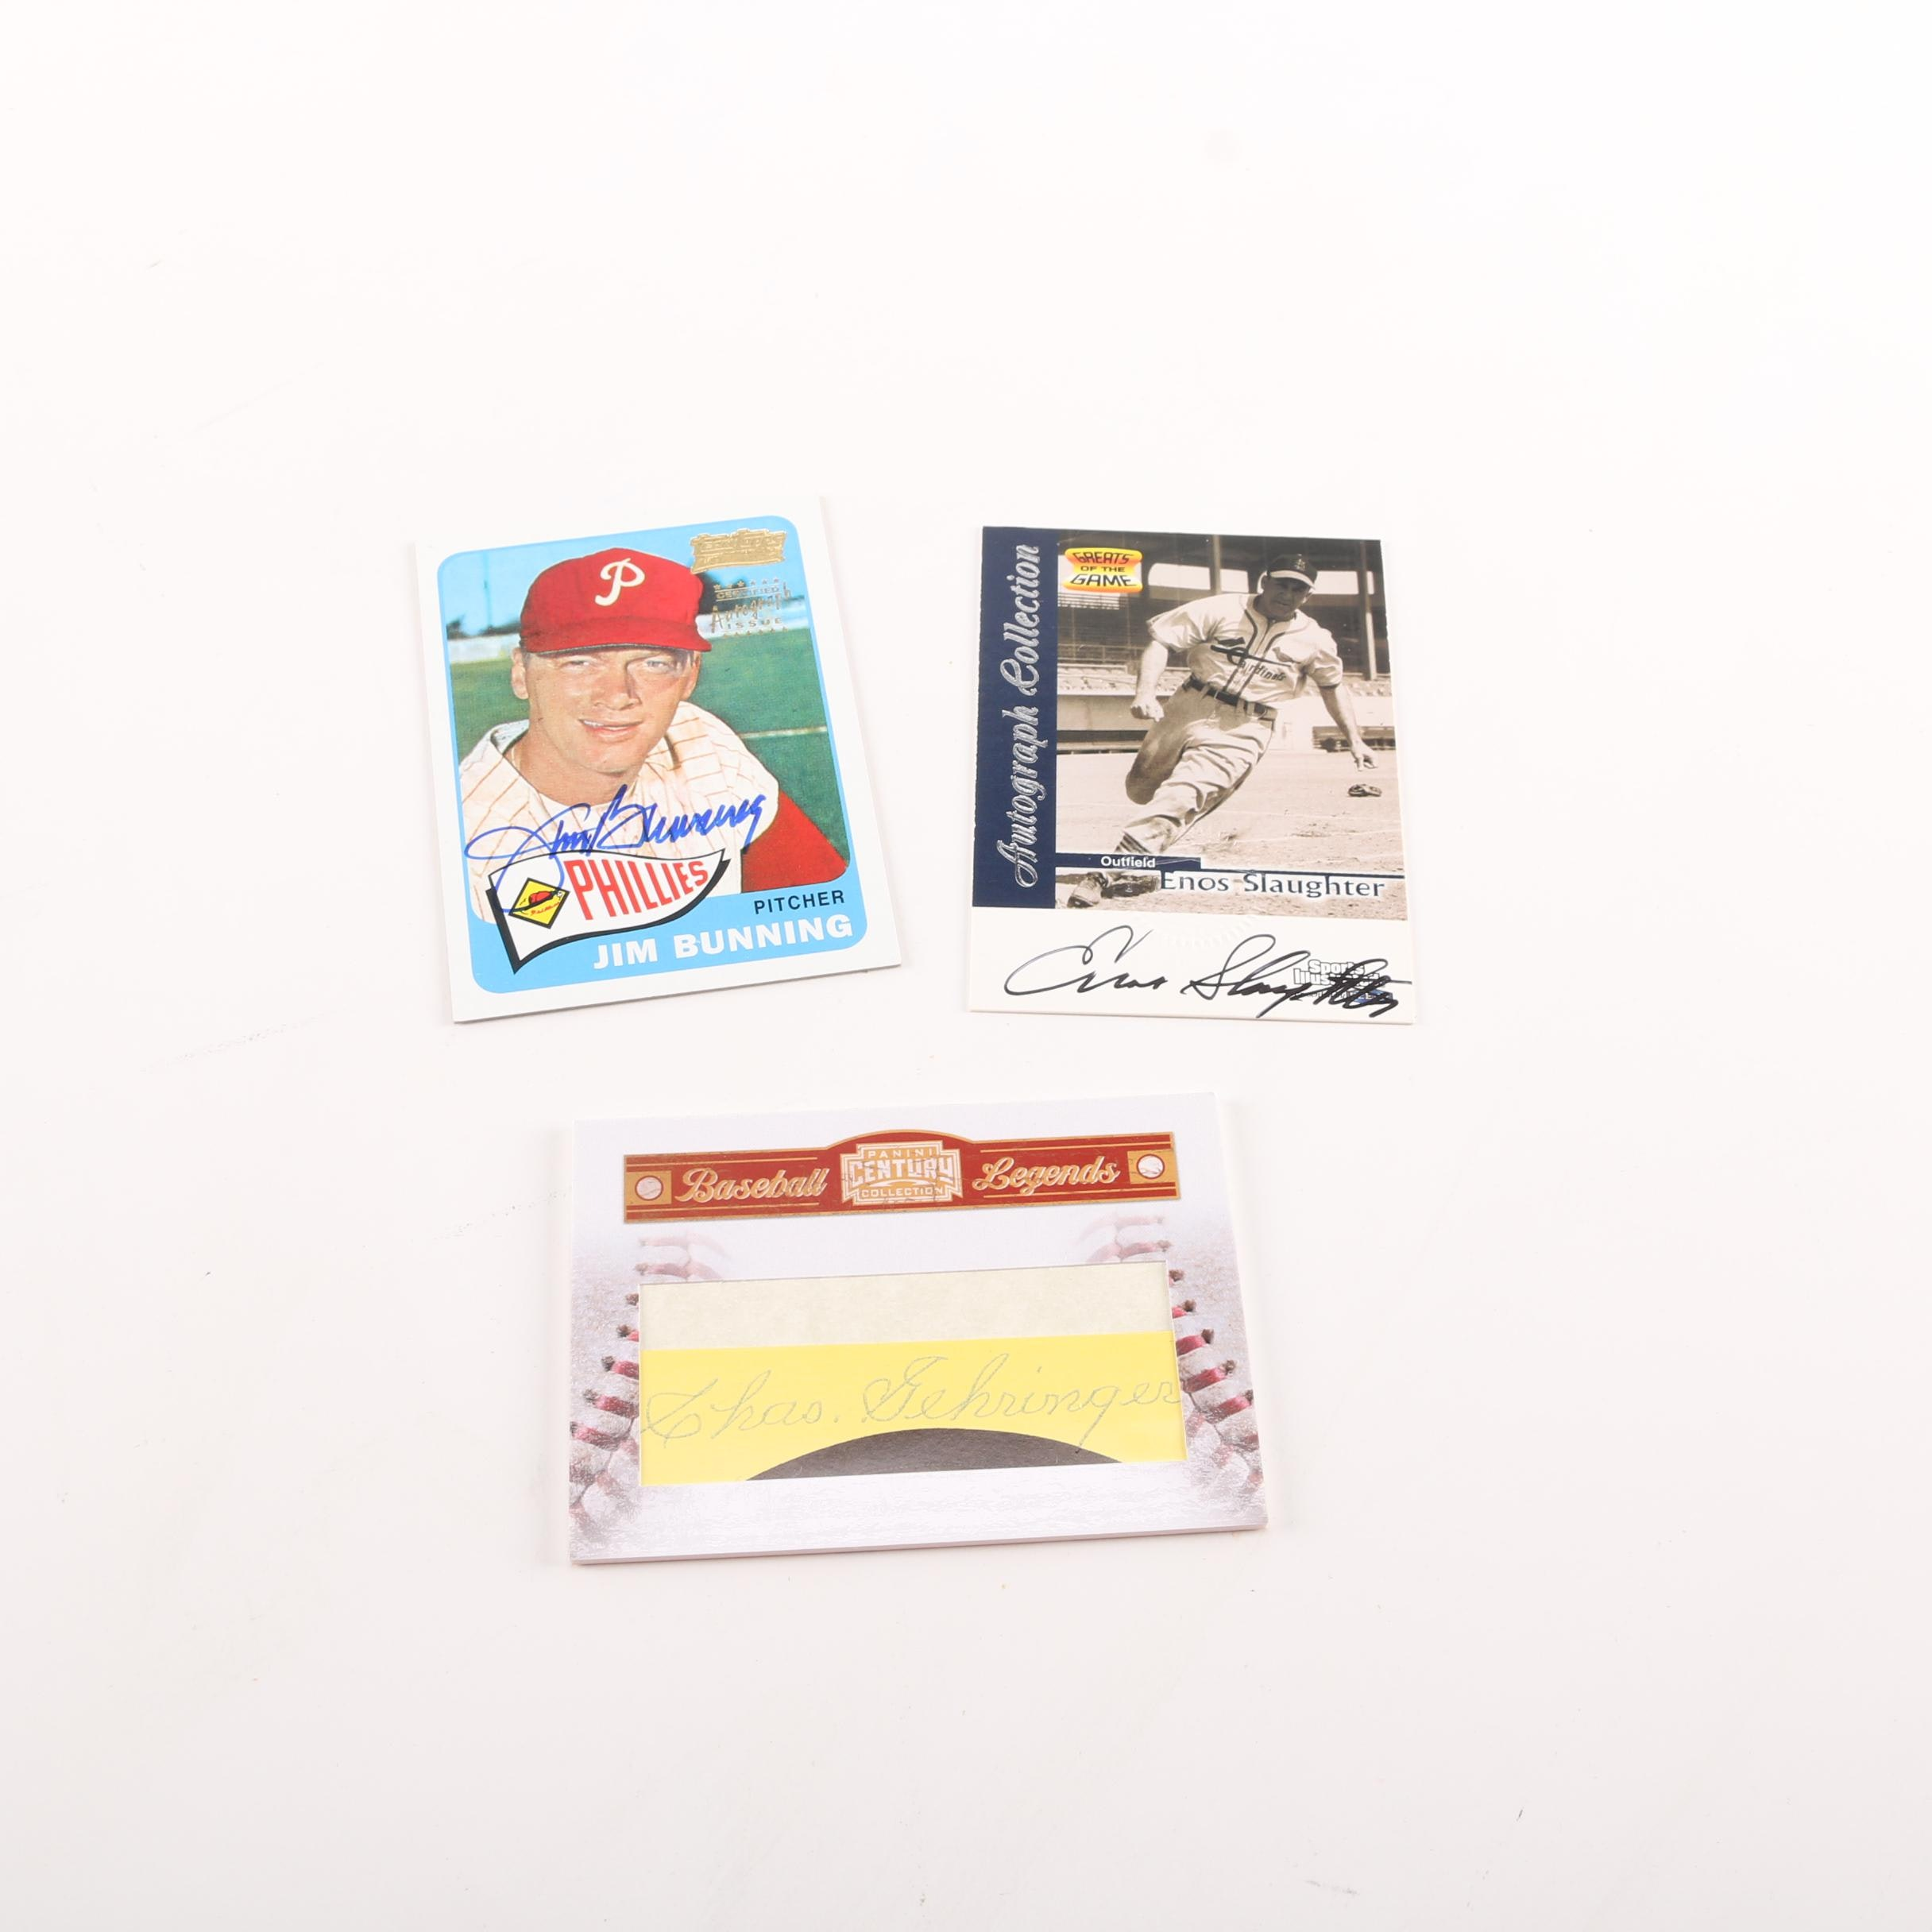 Signed Baseball Cards Including Jim Bunning and Enos Slaughter